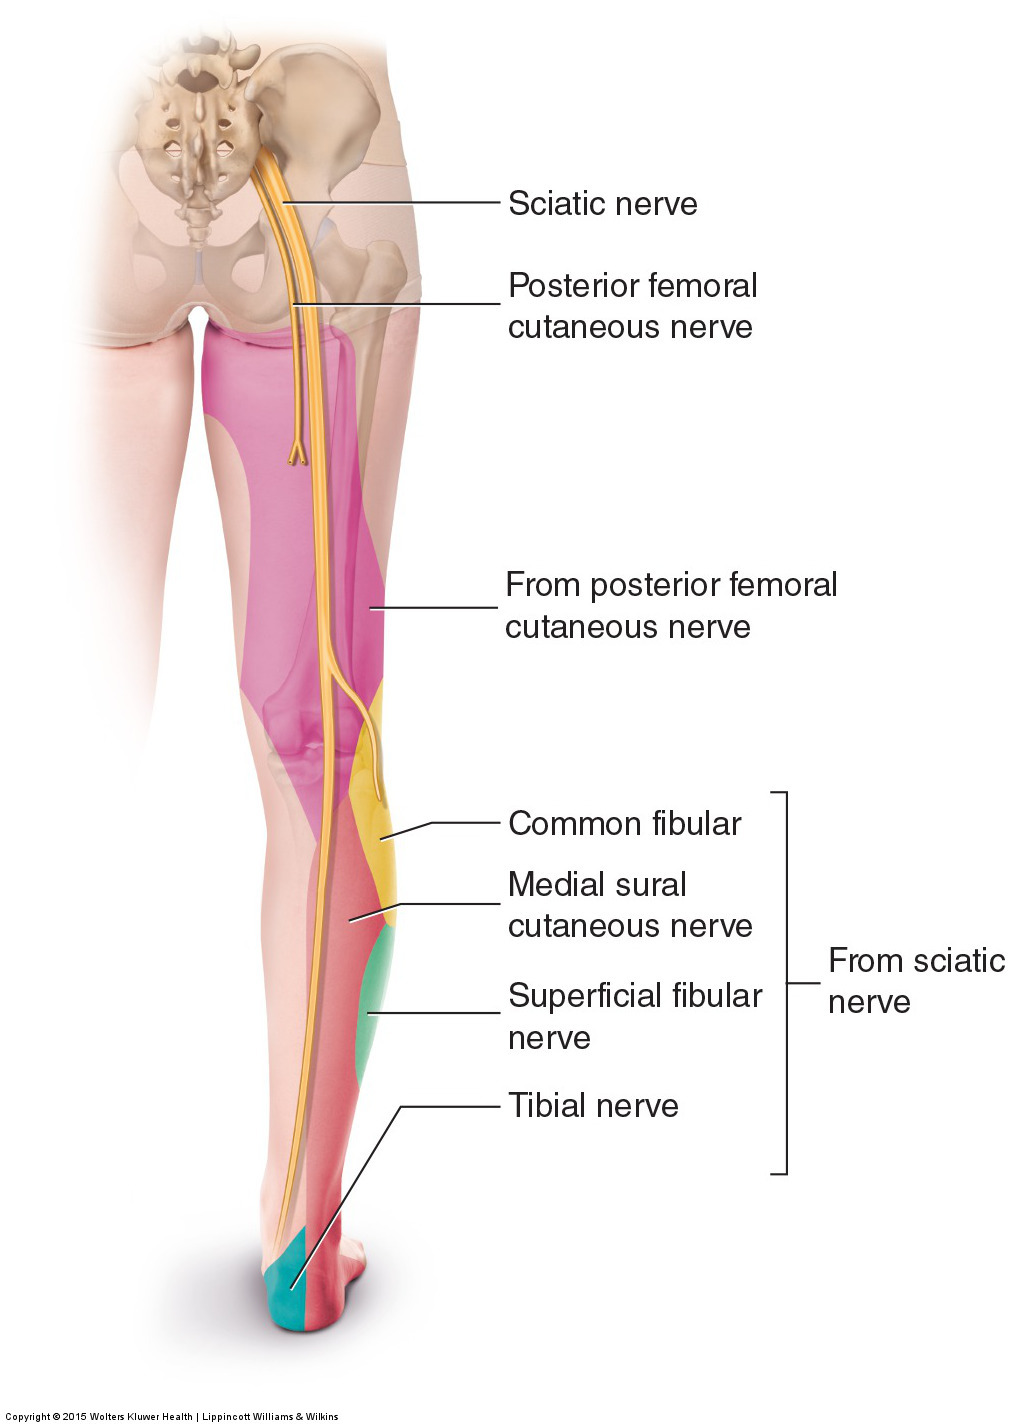 What Are The Signs And Symptoms Of Sciatica